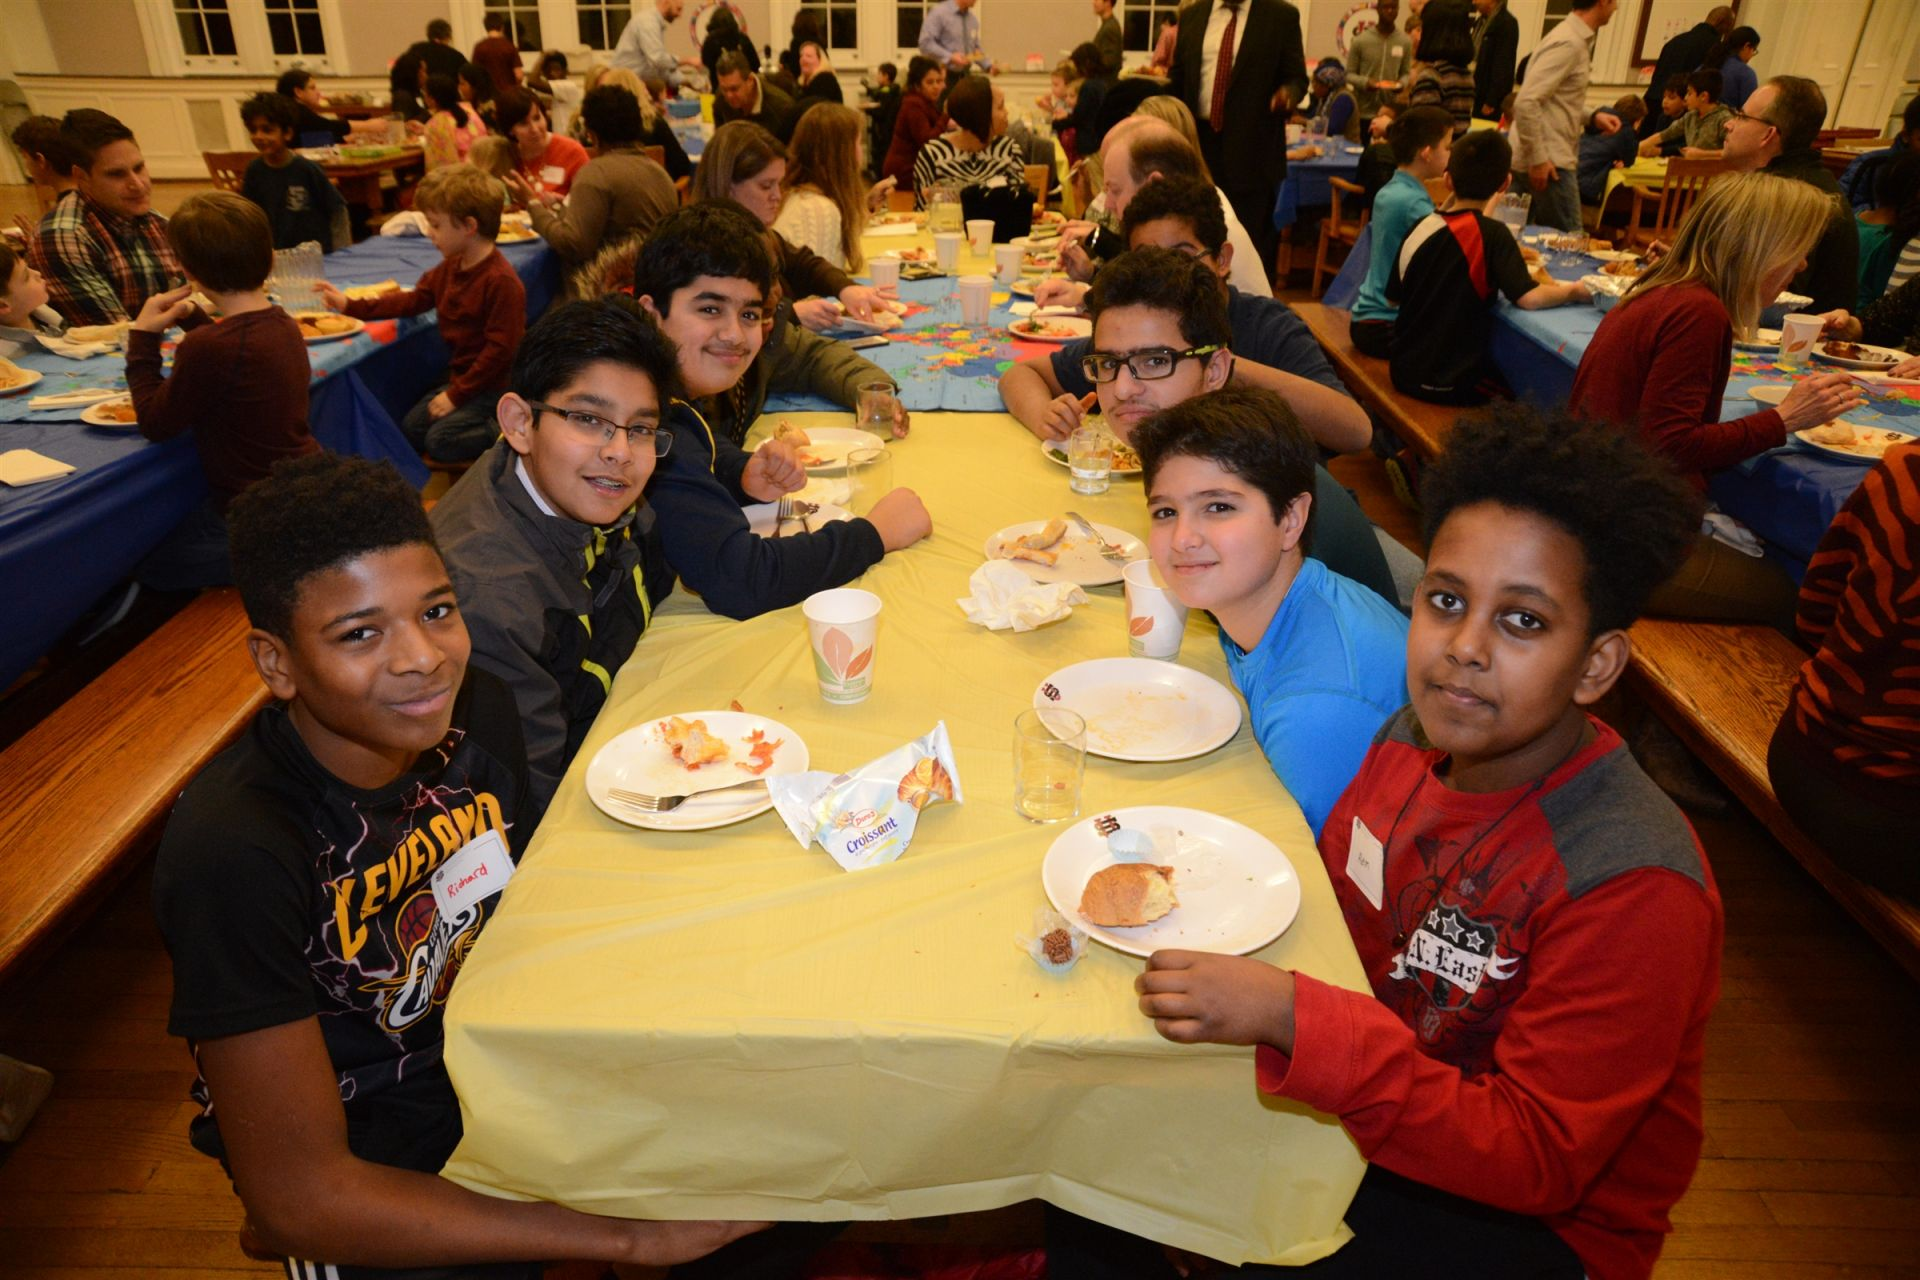 Students and their family's enjoy food from around the world at our Global Table potluck